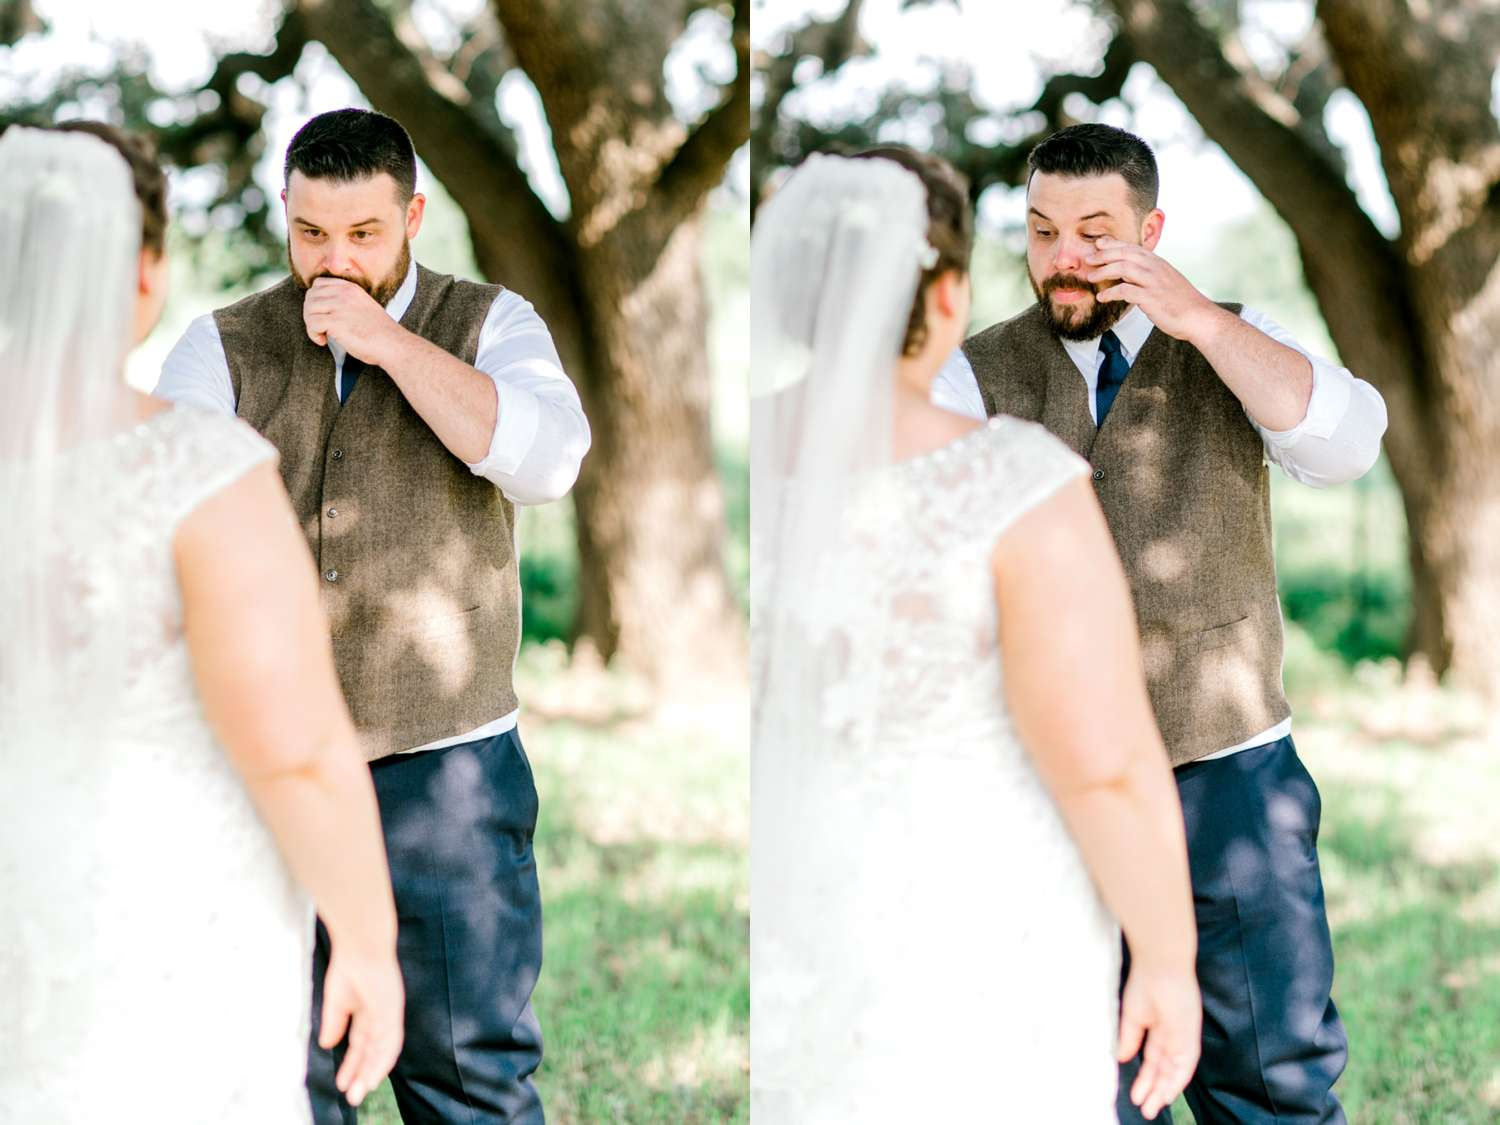 CHELSEA_AND_NICK_ADAMS_FREDRICKSBURG_WEDDING_ALLEEJ0021.jpg